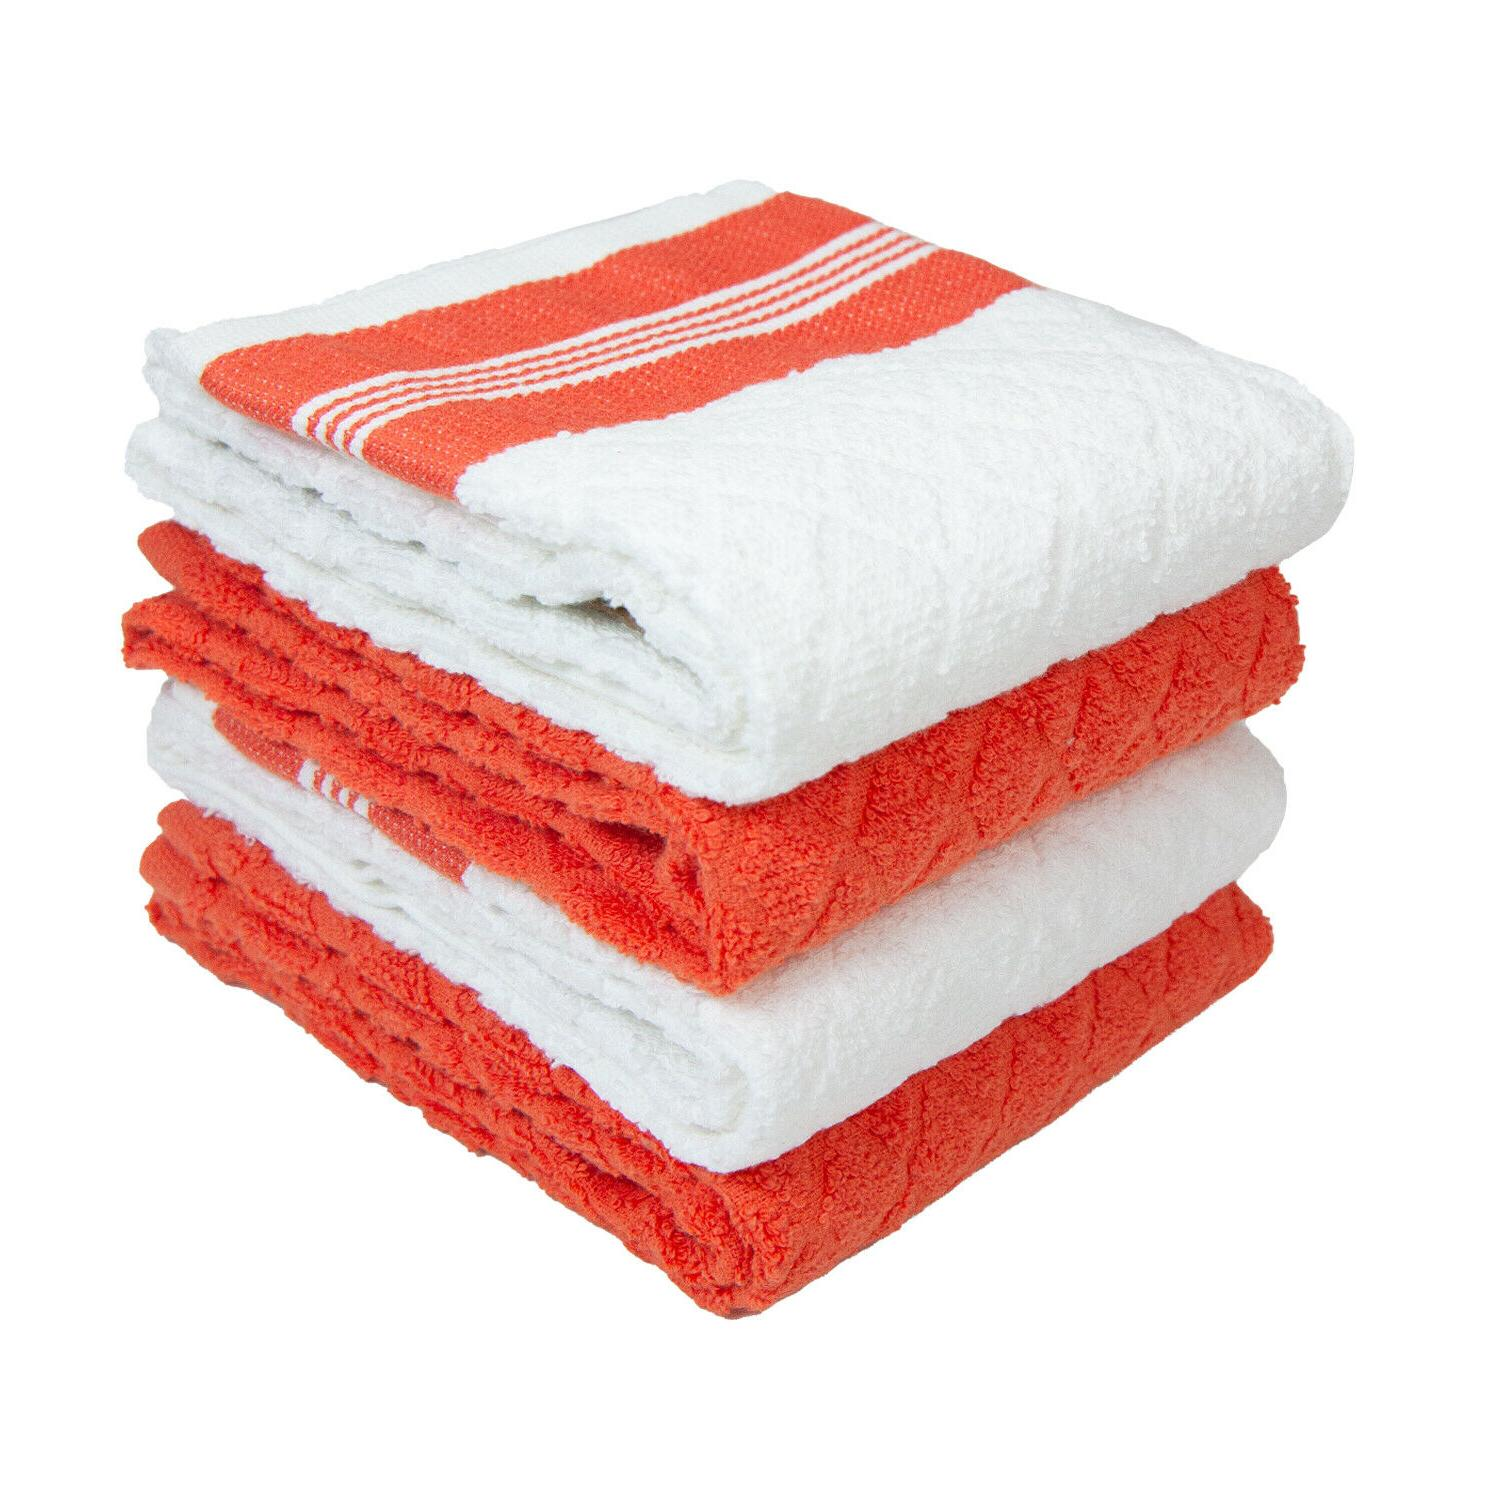 4 Pack of Towels - Cotton Dish